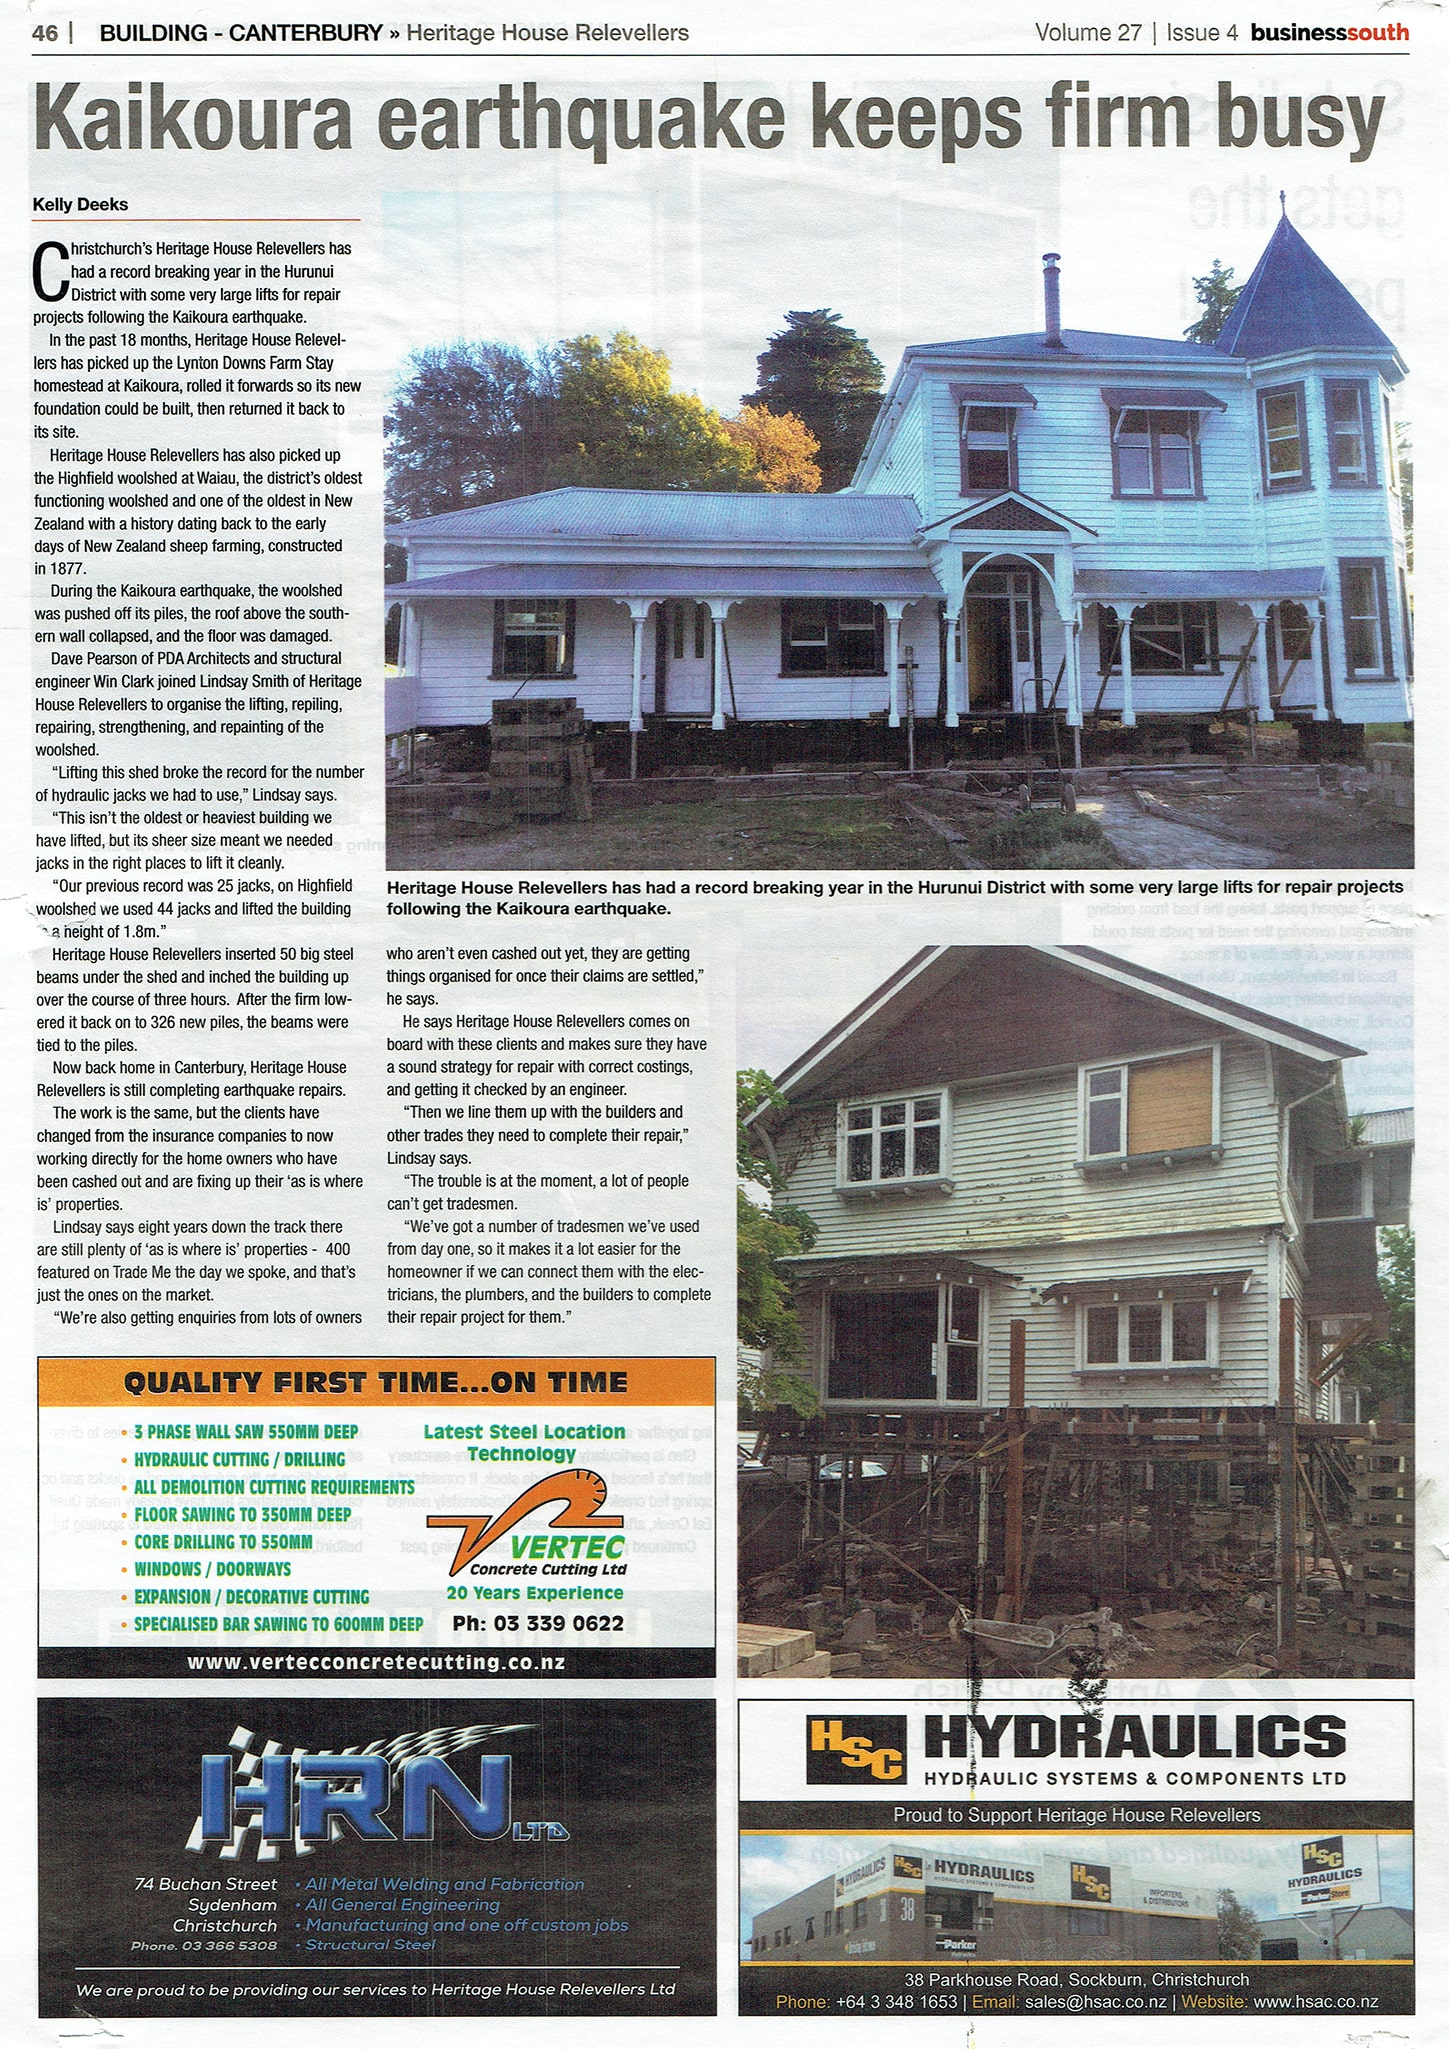 Heritage House Relevellers and Relocations in the newspaper